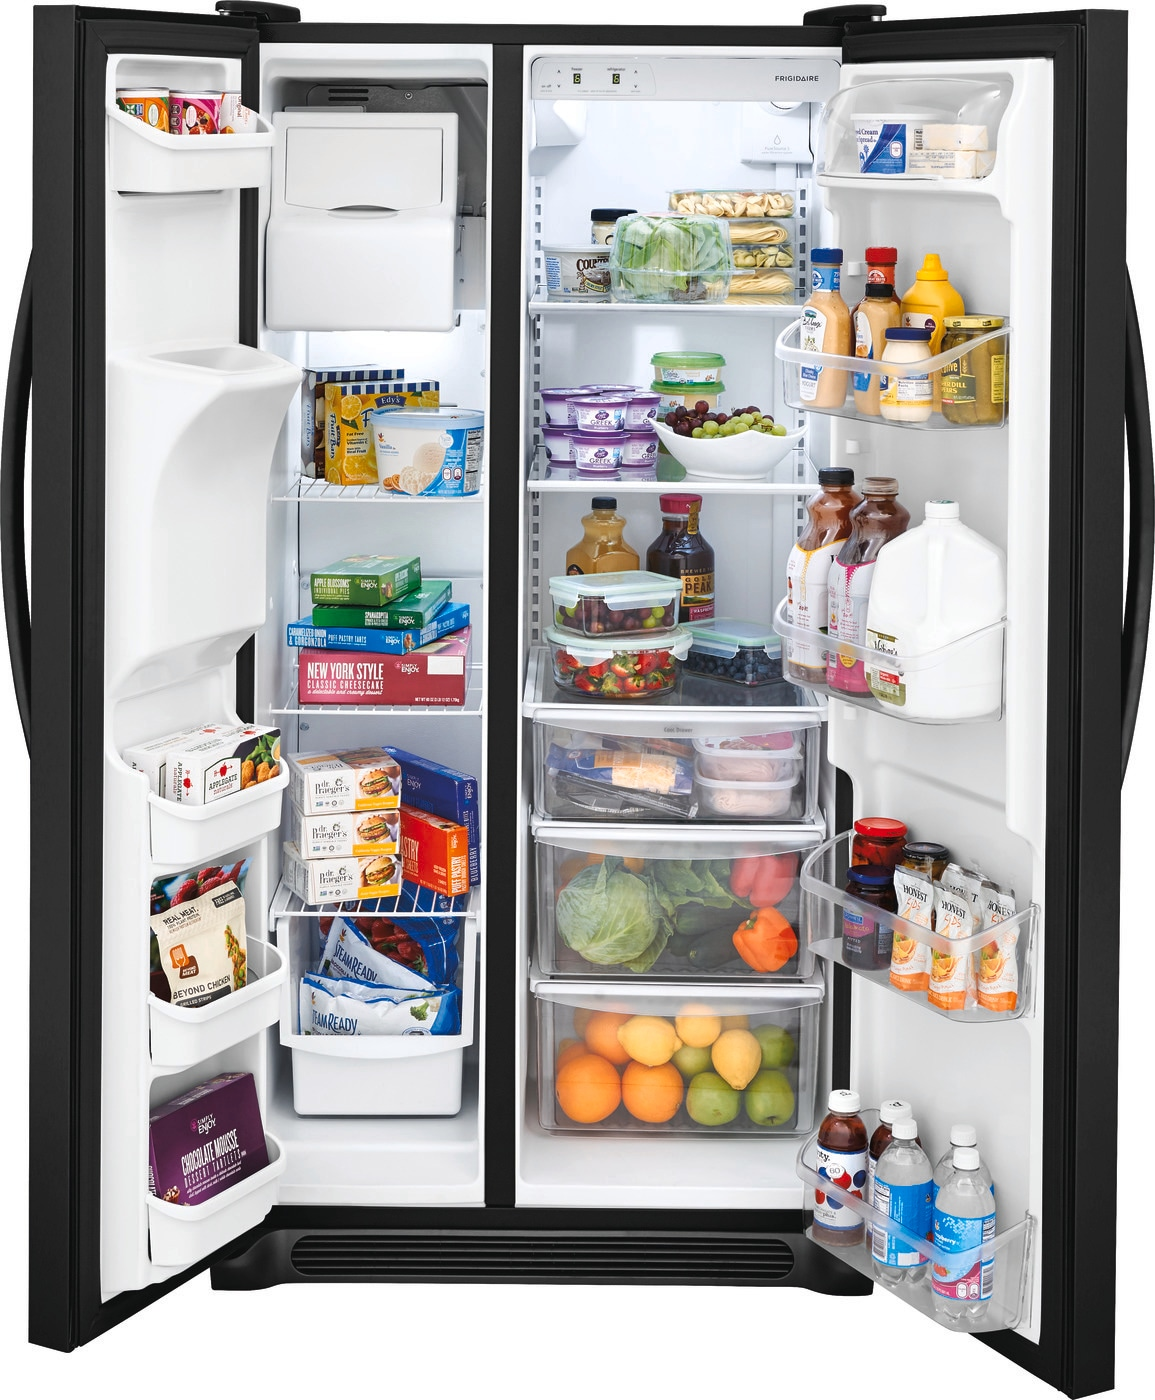 22.1 Cu. Ft. Side-by-Side Refrigerator Ebony Black FFSS2315TE